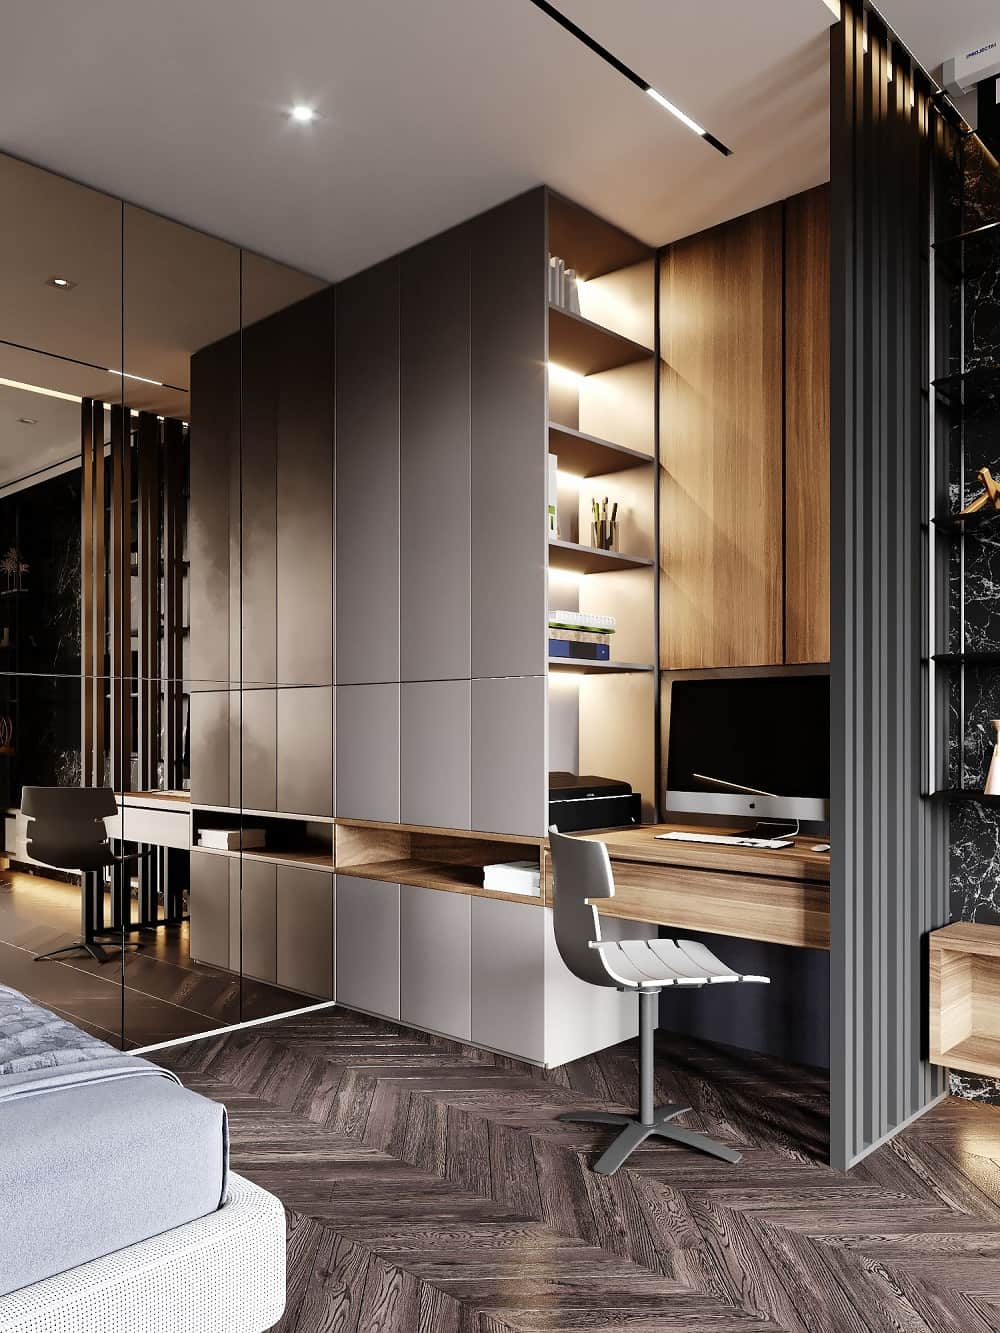 Easy Ways To Liven Up Your Home Office Space In 2021. Ultramodern home working space with high storage rack having LED lighting